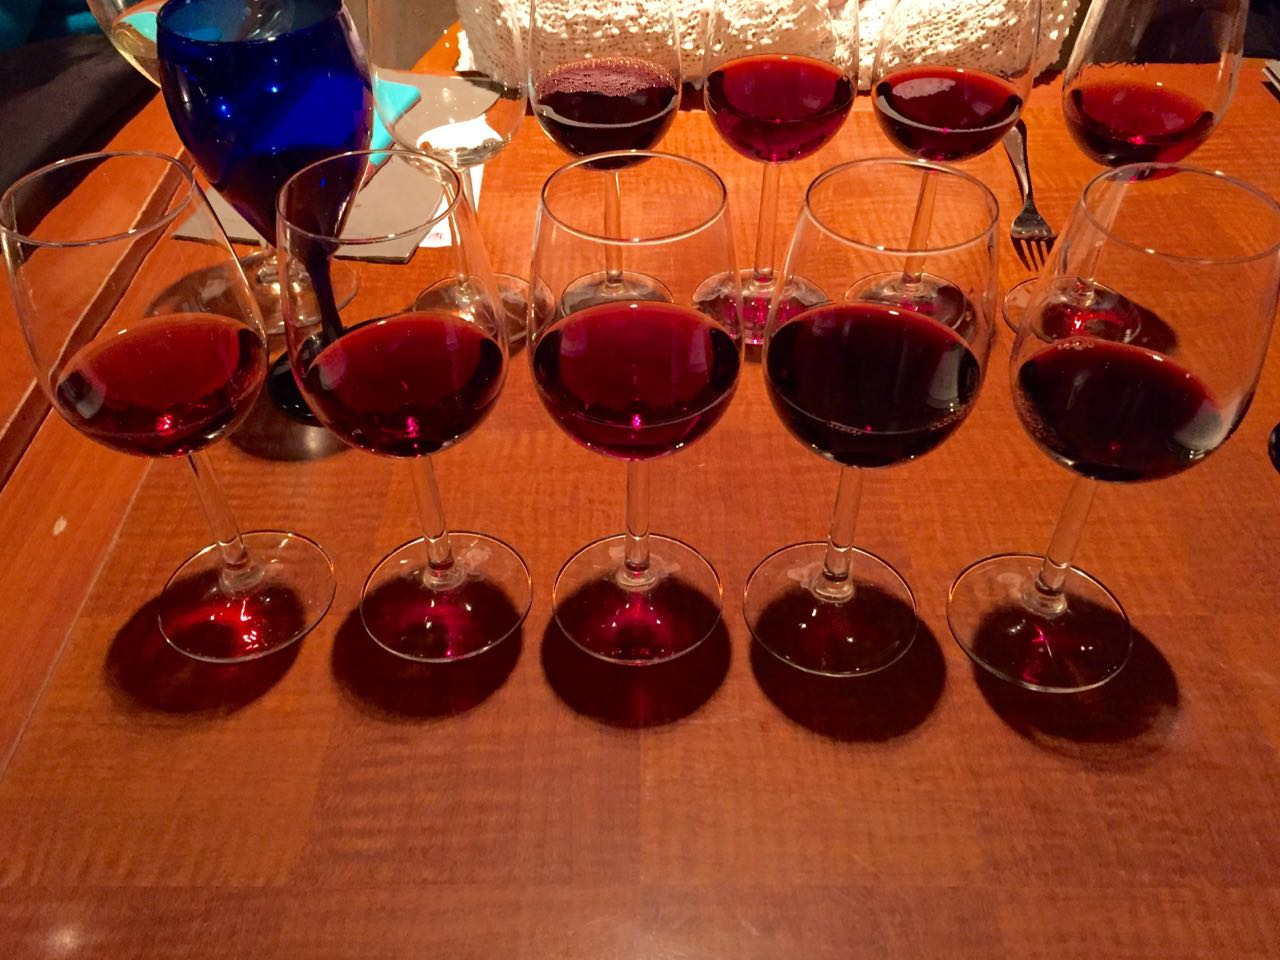 BC Winemakers' dinner at Mantles - Winter Okanagan Wine Festival